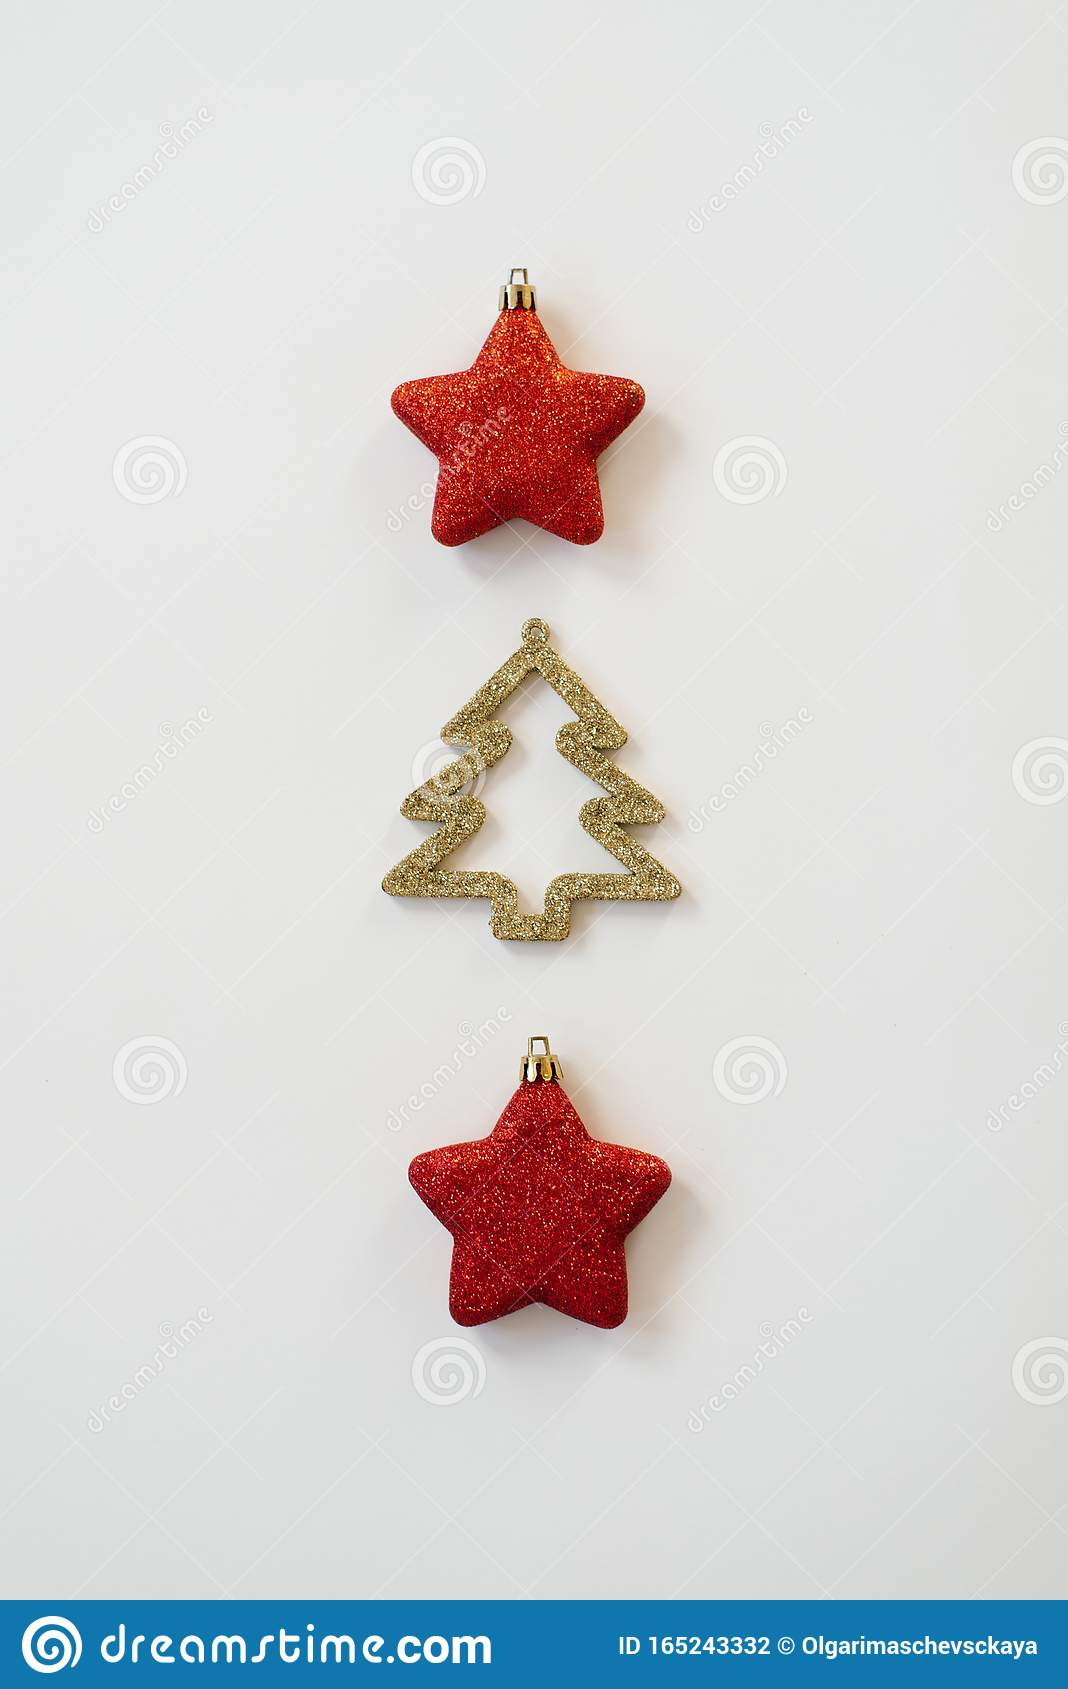 Christmas Minimalist Concept Christmas Tree With Gold Sequins And Red Toy Christmas Stars Design Template Merry Christmas Backgr Stock Photo Image Of Background Stars 165243332